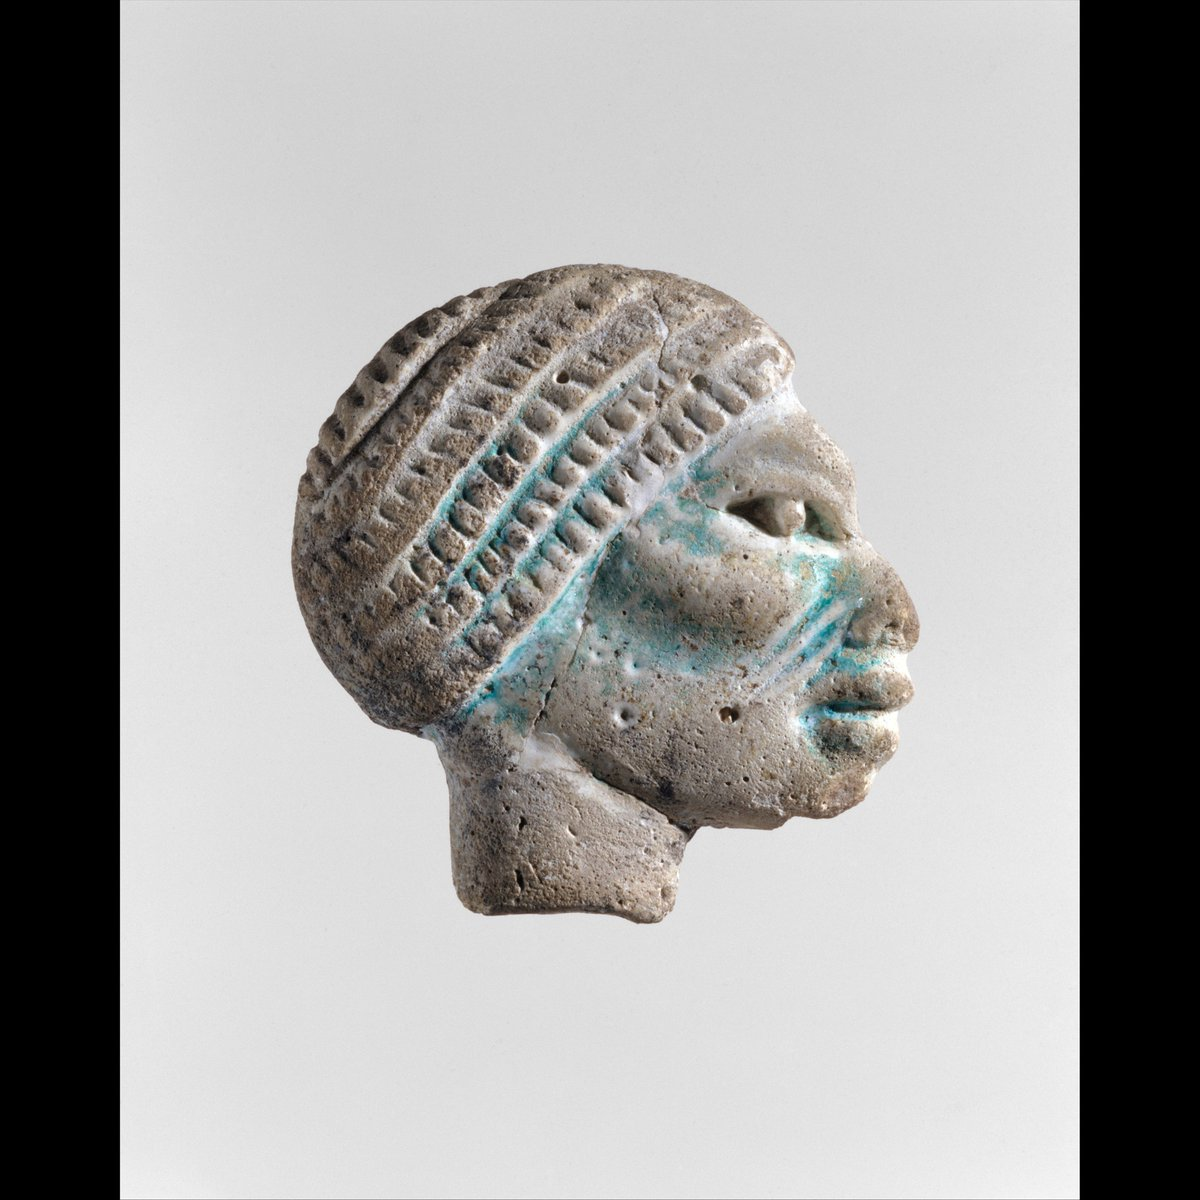 Nubian head inlay Inlay, Nubian head period: New Kingdom, Ramesside country: Egypt  #art #artwork #artlover #artaccount #arte #アート #艺术 #Egyptpic.twitter.com/zn6lxN2MyP